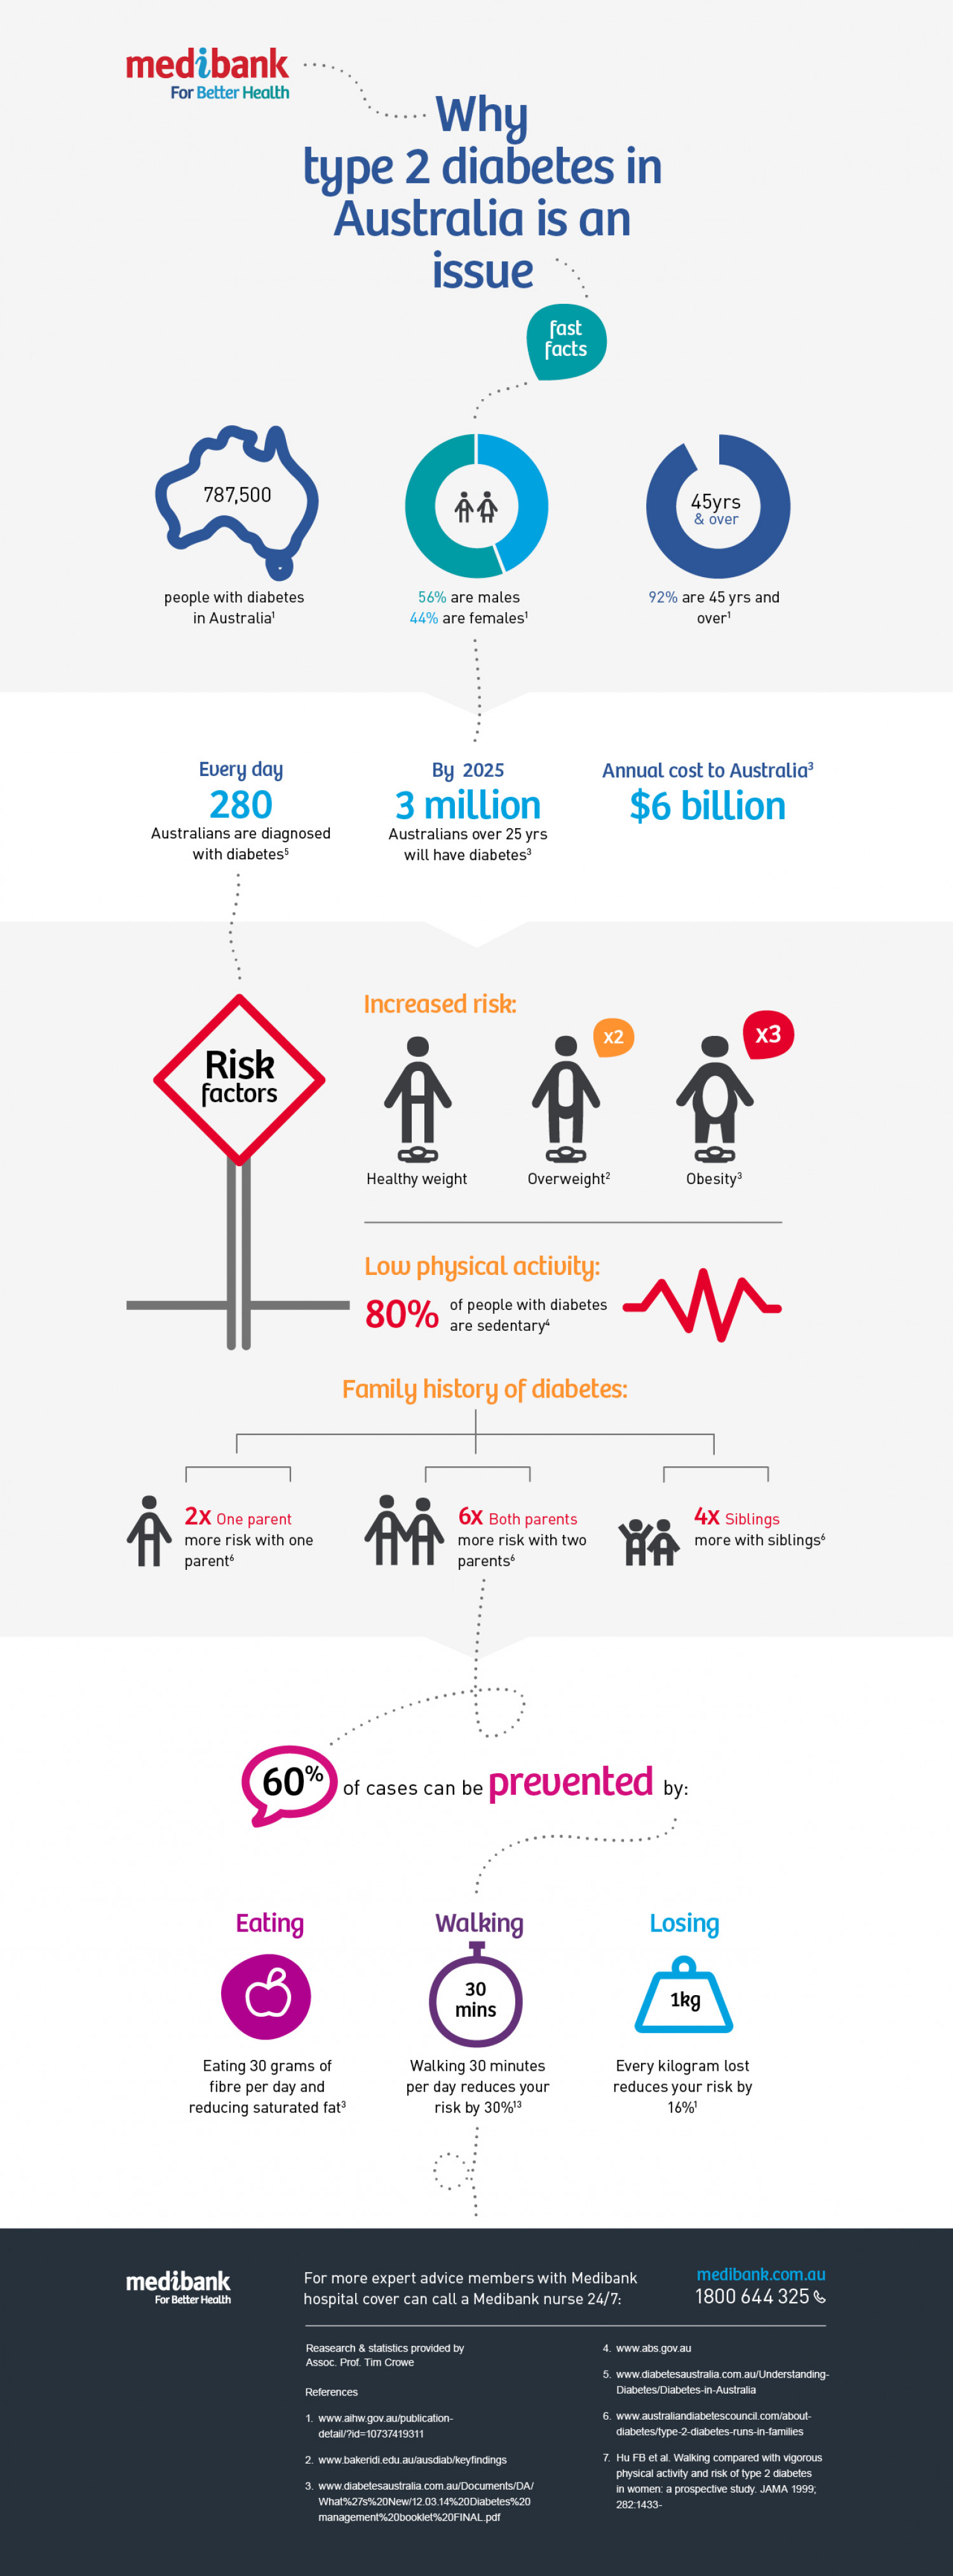 Why type 2 diabetes in Australia is an issue Infographic